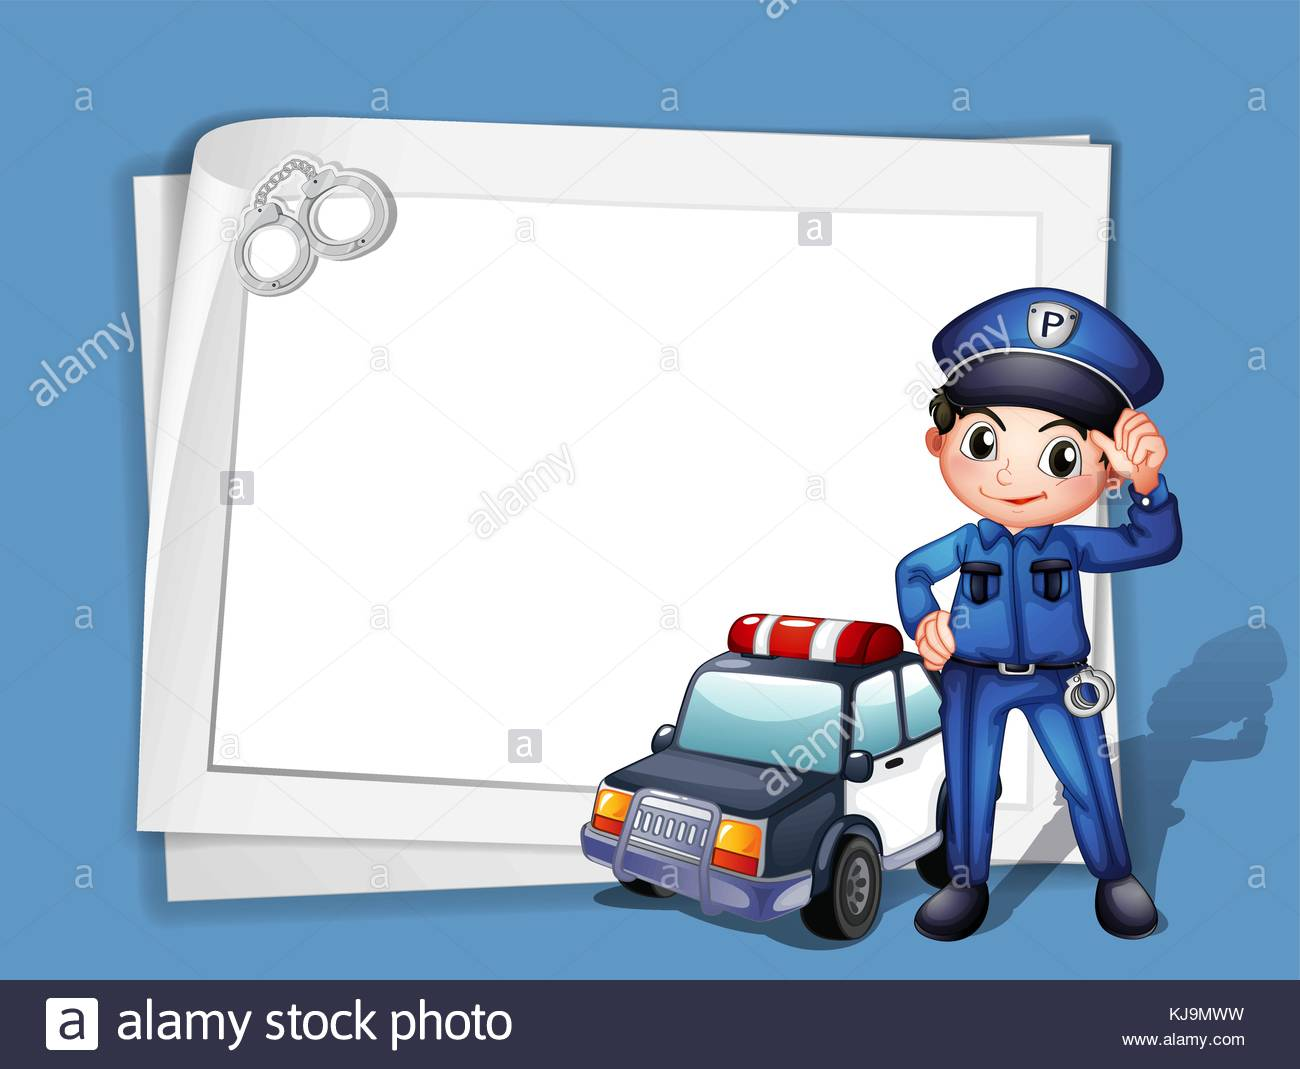 Illustration of a policeman beside a police car on a blue 1300x1069